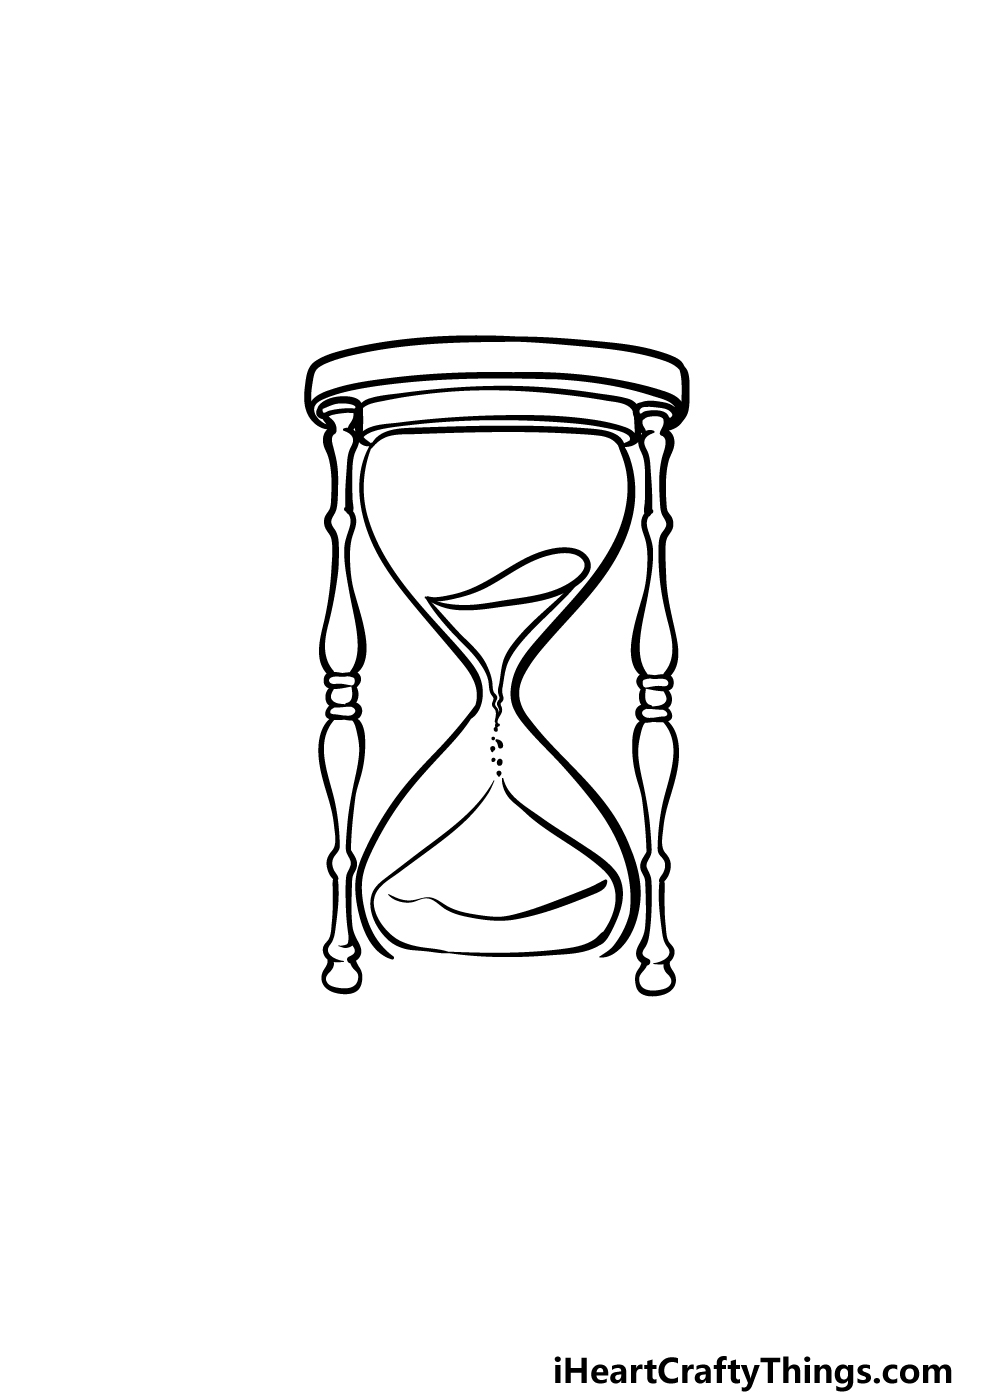 drawing an hourglass step 4